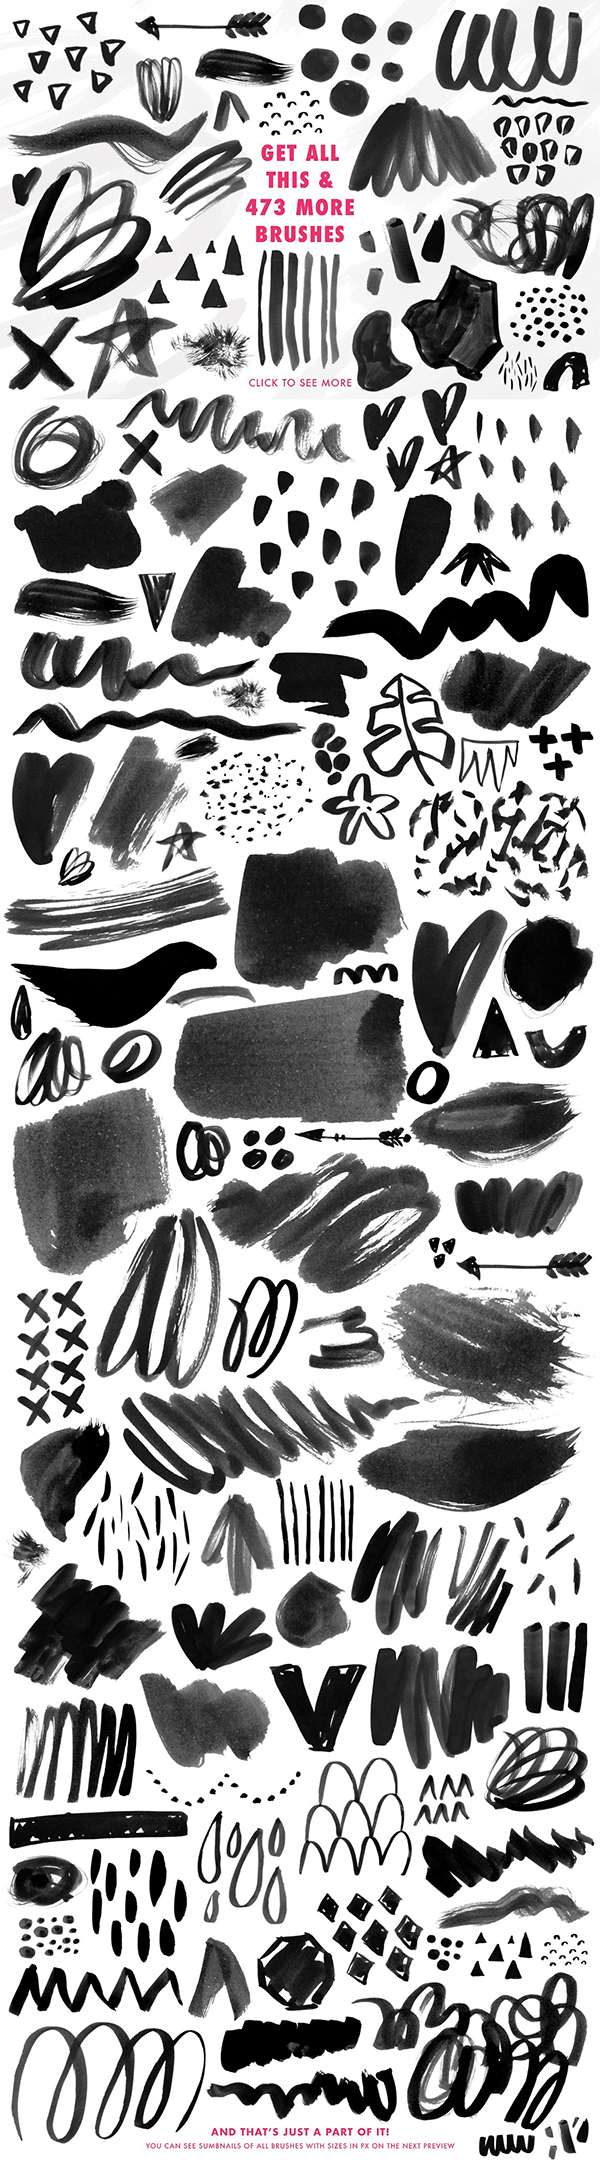 Fantastic Photoshop Brushes With Texture